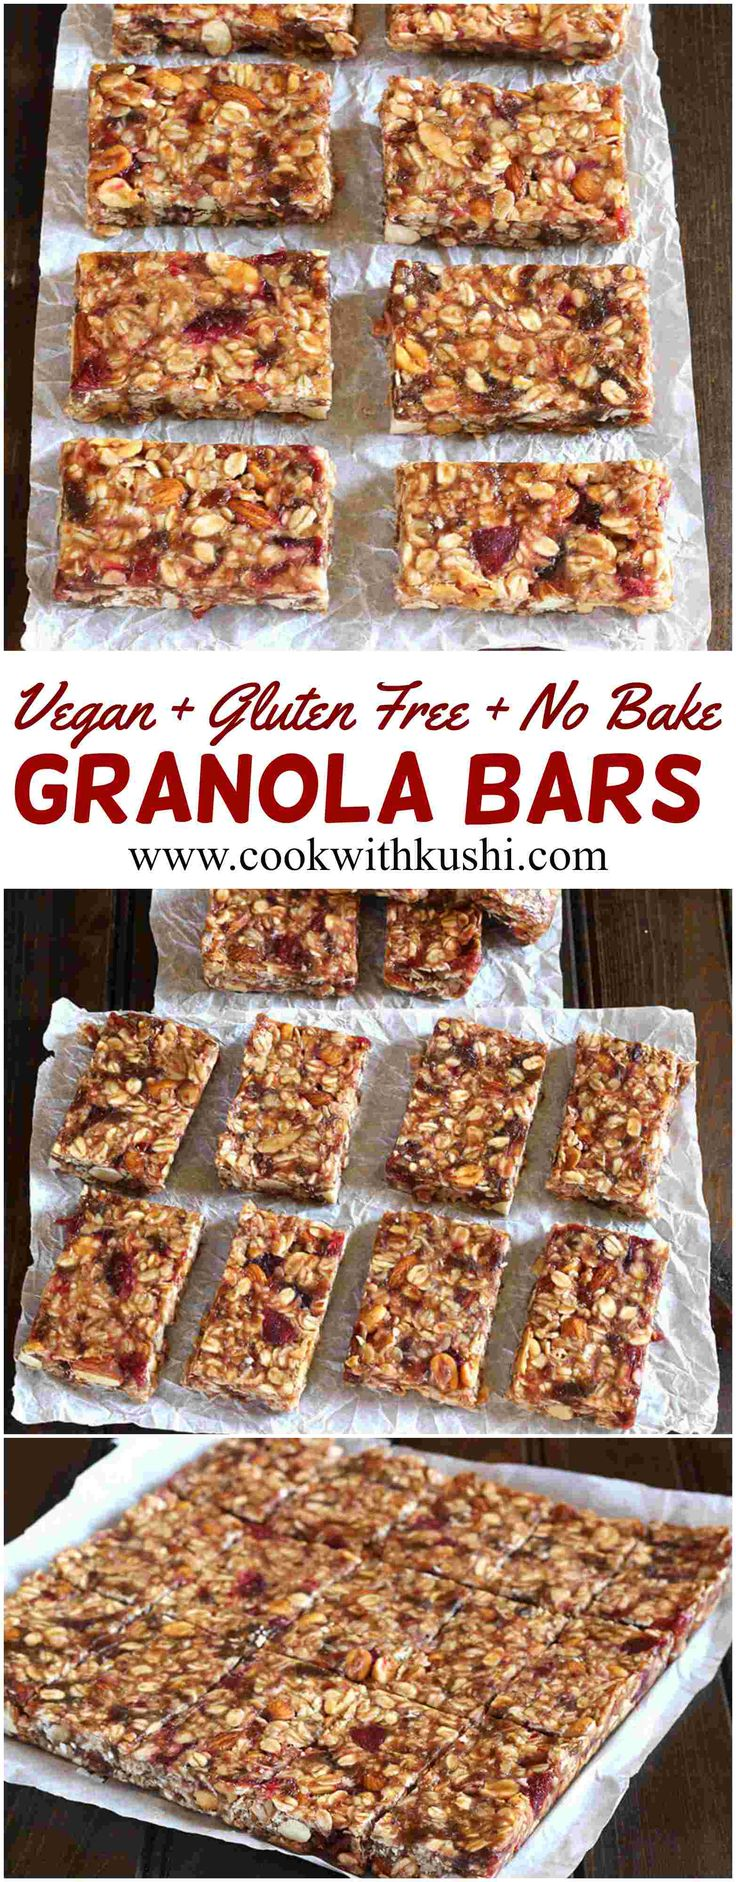 No Bake Granola Bars are easy to make, healthy and delicious sugar free snack that can be taken for any social gathering or family outings. This recipe is customizable, vegan and gluten free :-) #heftyslidersavings #ad #sponsored #vegan #vegetarian #Nobake #glutenfree #holiday #snack #appetizer #Bhgfood #buzfeedfood #Feedfeed #recipe #christmas #thanksgiving